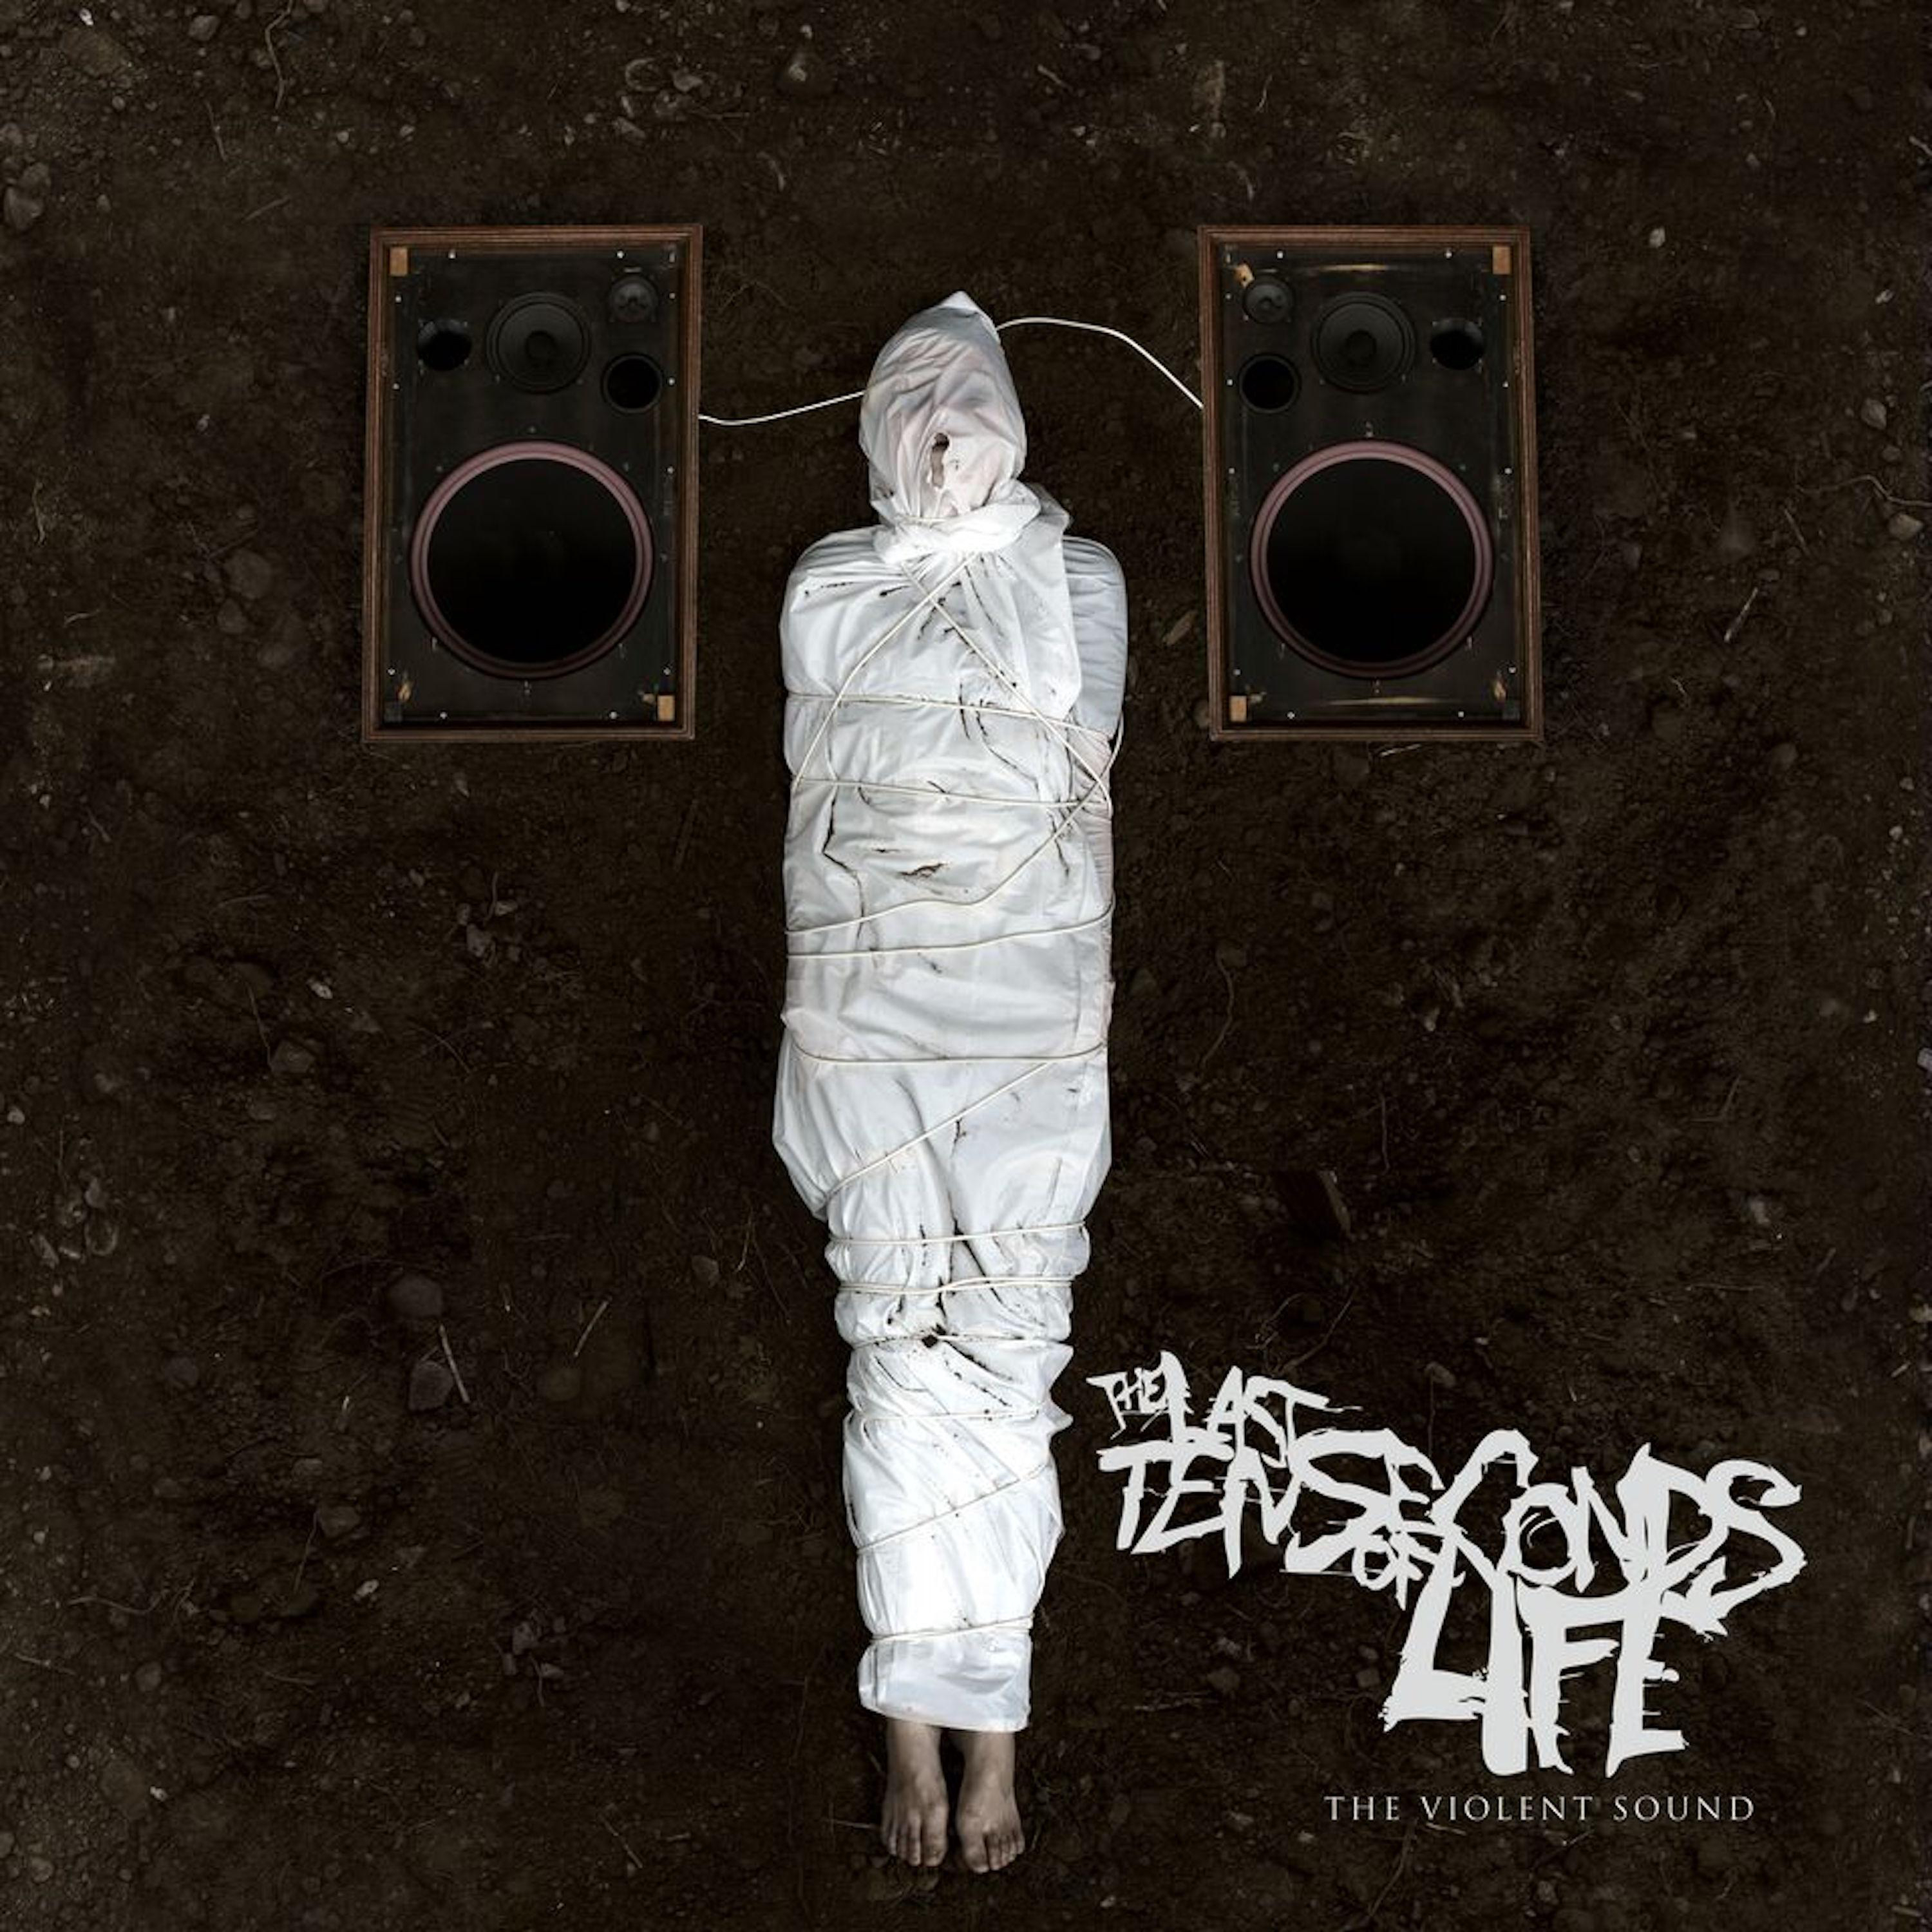 The Last Ten Seconds of Life - The Violent Sound (2016)